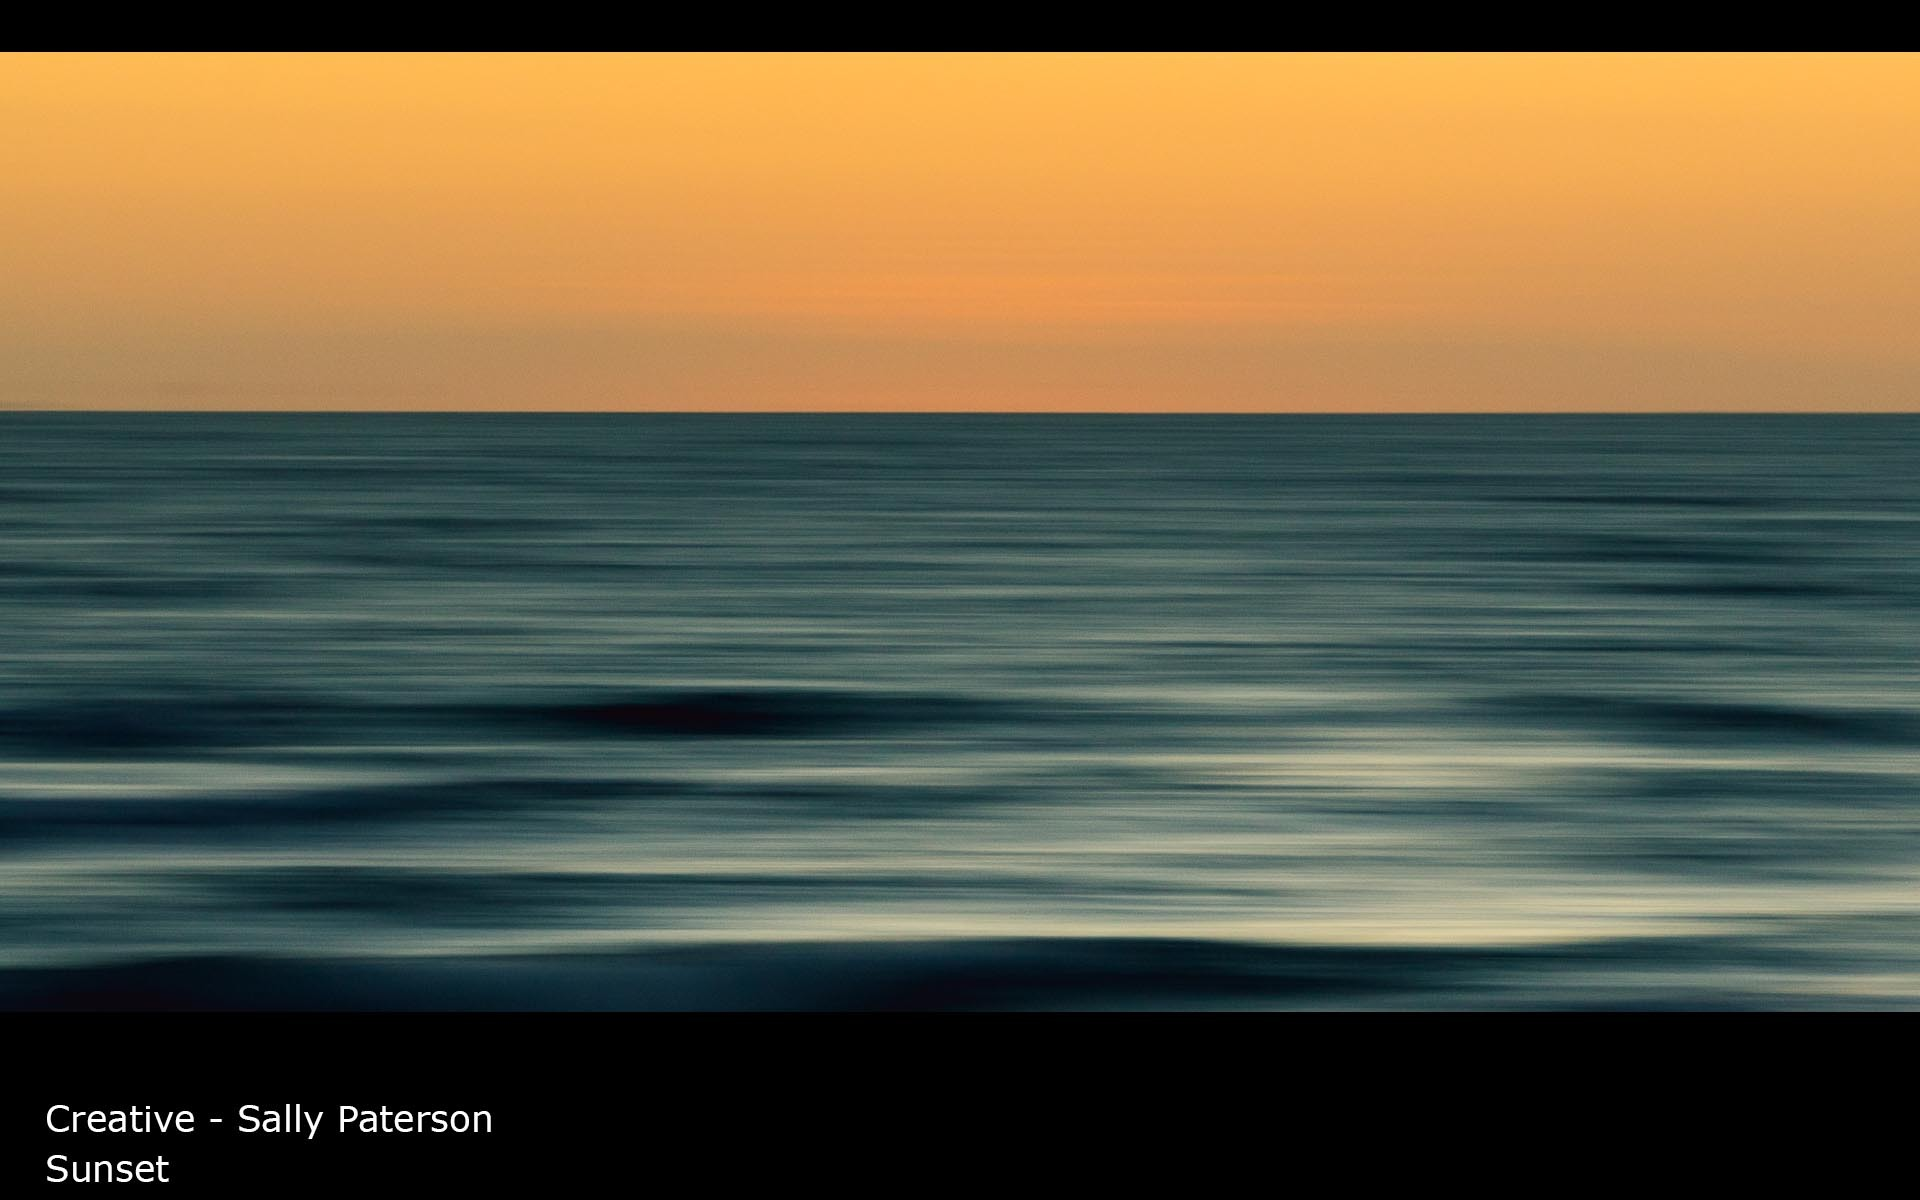 Sunset - Sally Paterson